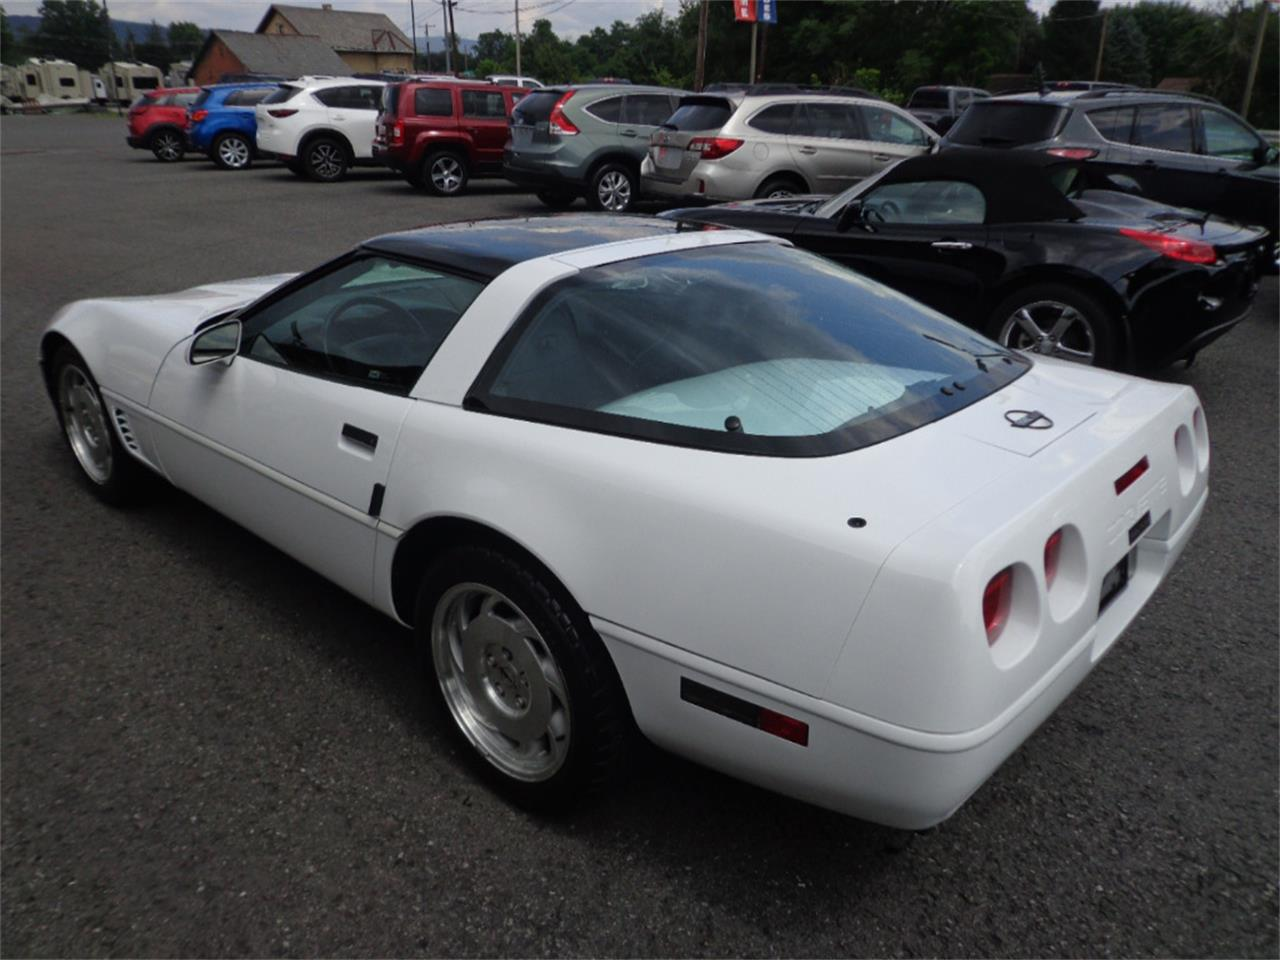 Large Picture of '96 Corvette located in MILL HALL Pennsylvania Auction Vehicle - OINA